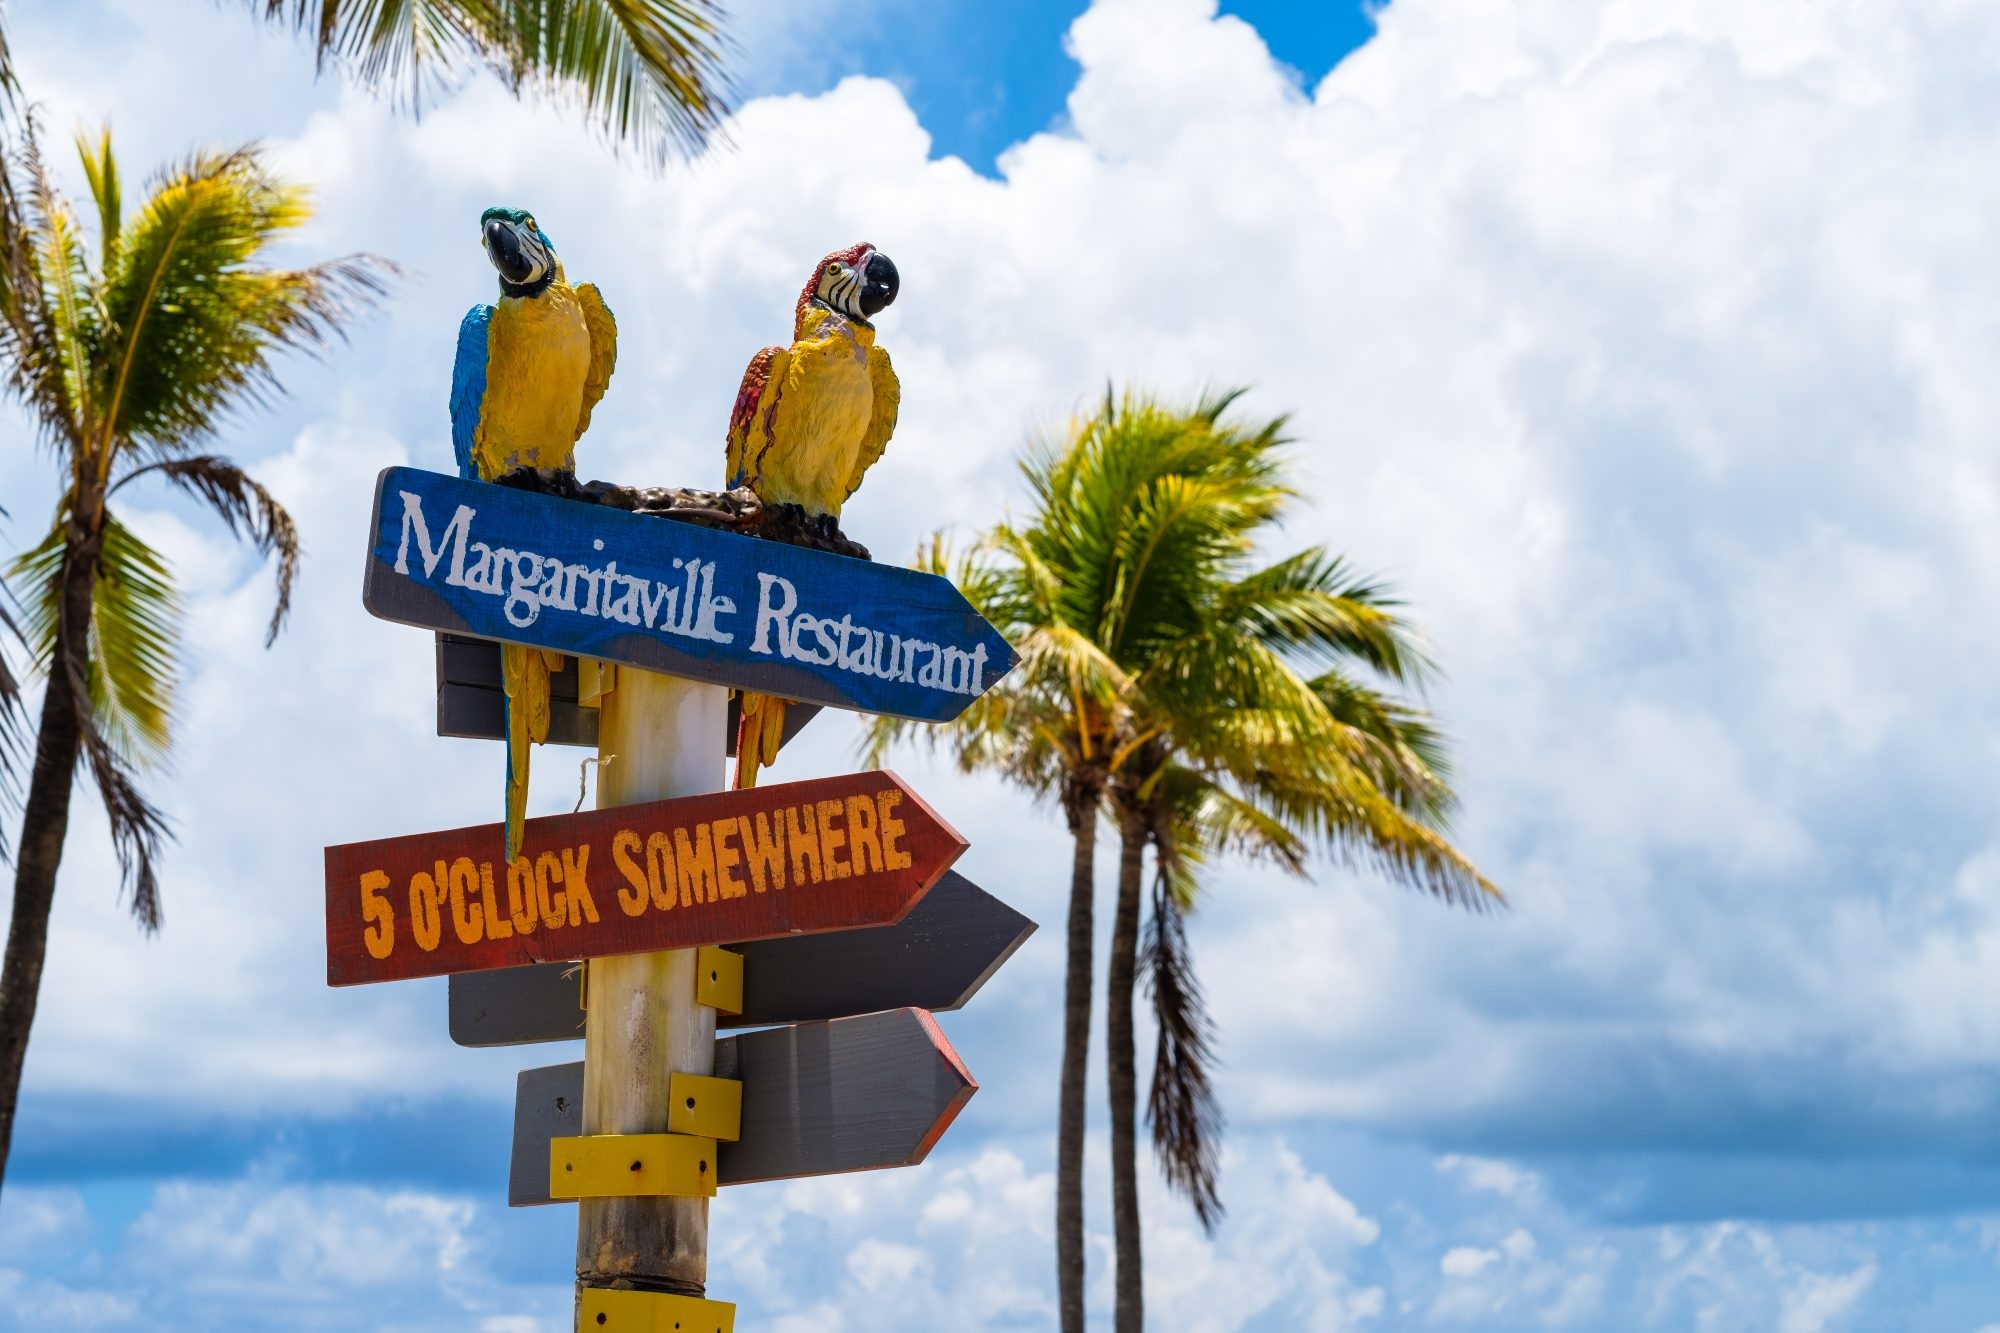 margaritaville sign and parrots